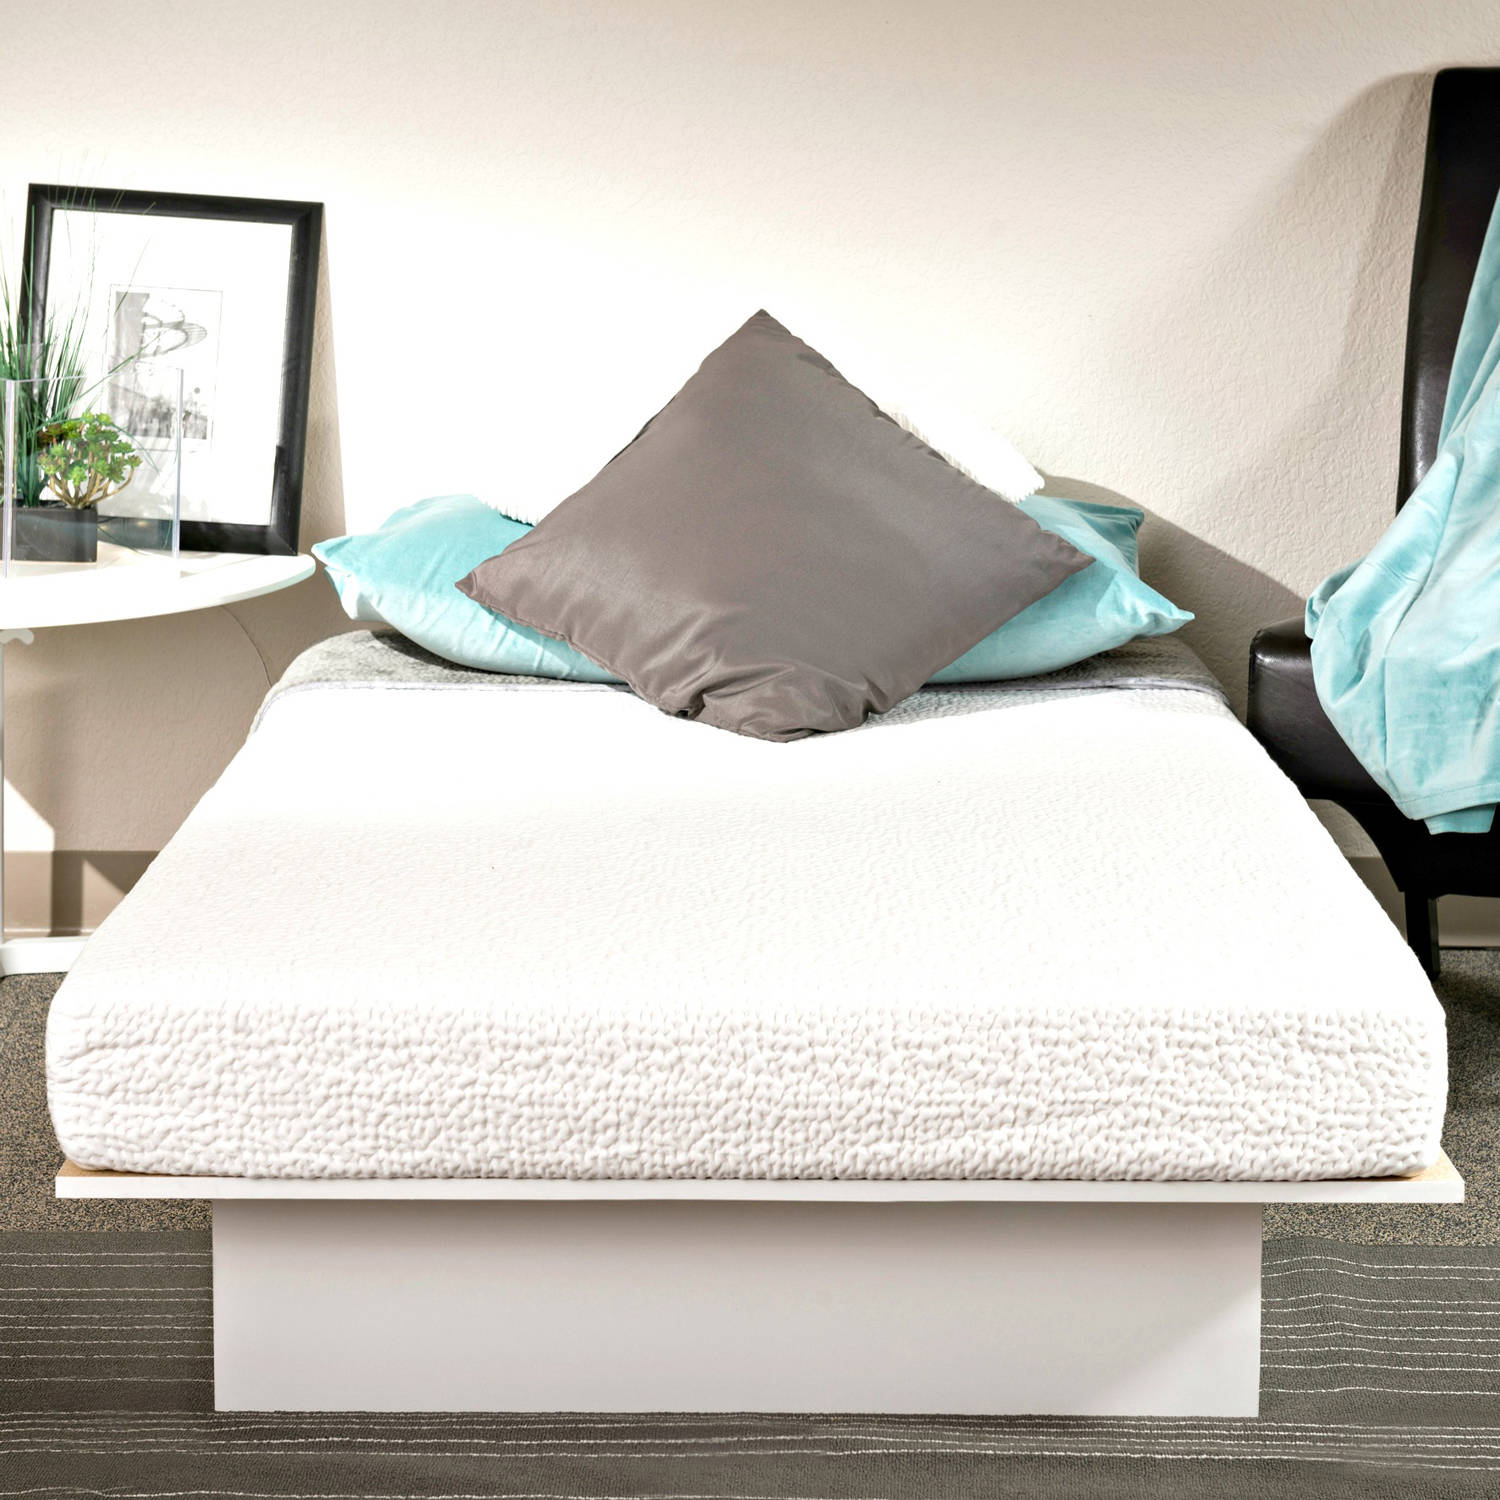 "Best Choice Products 10"" Dual Layered Memory Foam Mattress Queen-  CertiPUR-US Certified Foam - Walmart.com"